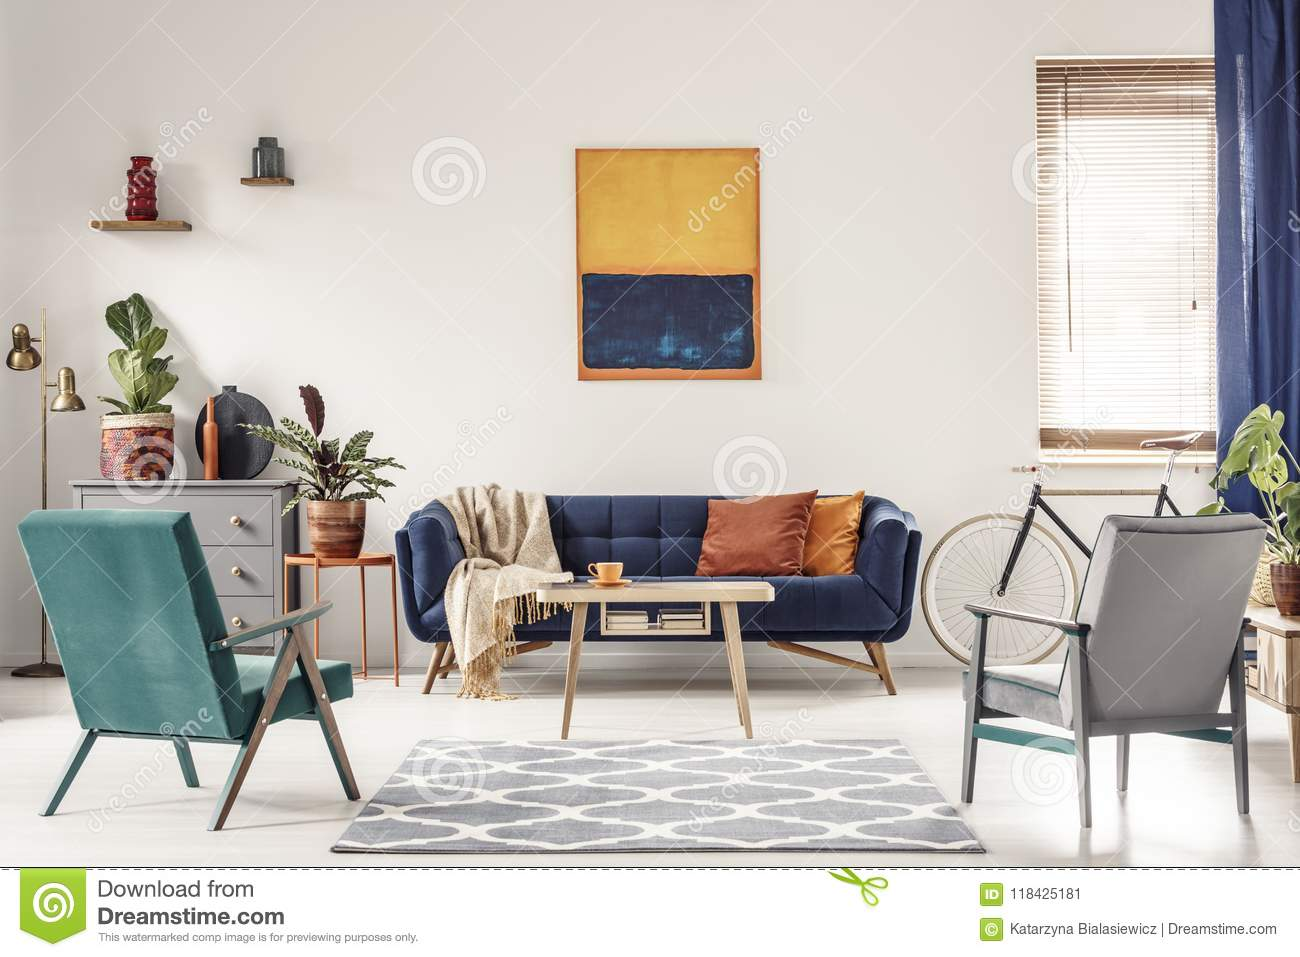 Real Photo Of A Navy Blue Sofa With Orange Cushions And An Artwo